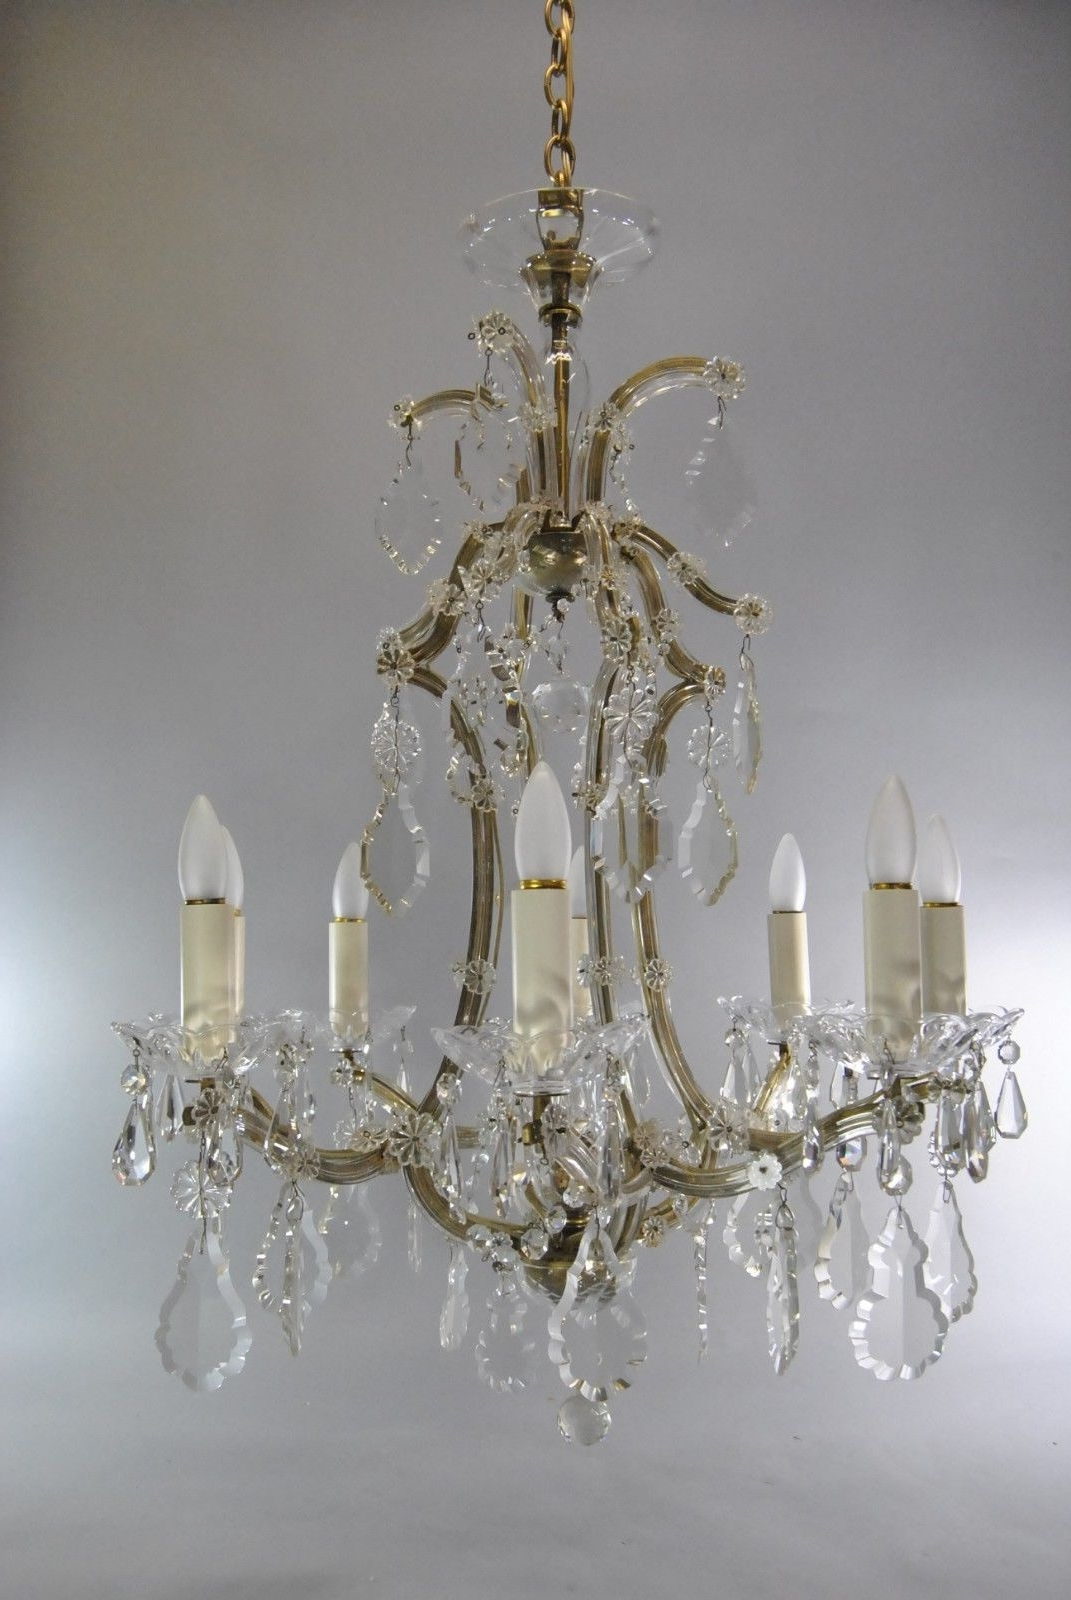 French Crystal Chandeliers Regarding Most Recently Released Chandelier: Stunning French Crystal Chandelier French Empire (View 4 of 15)